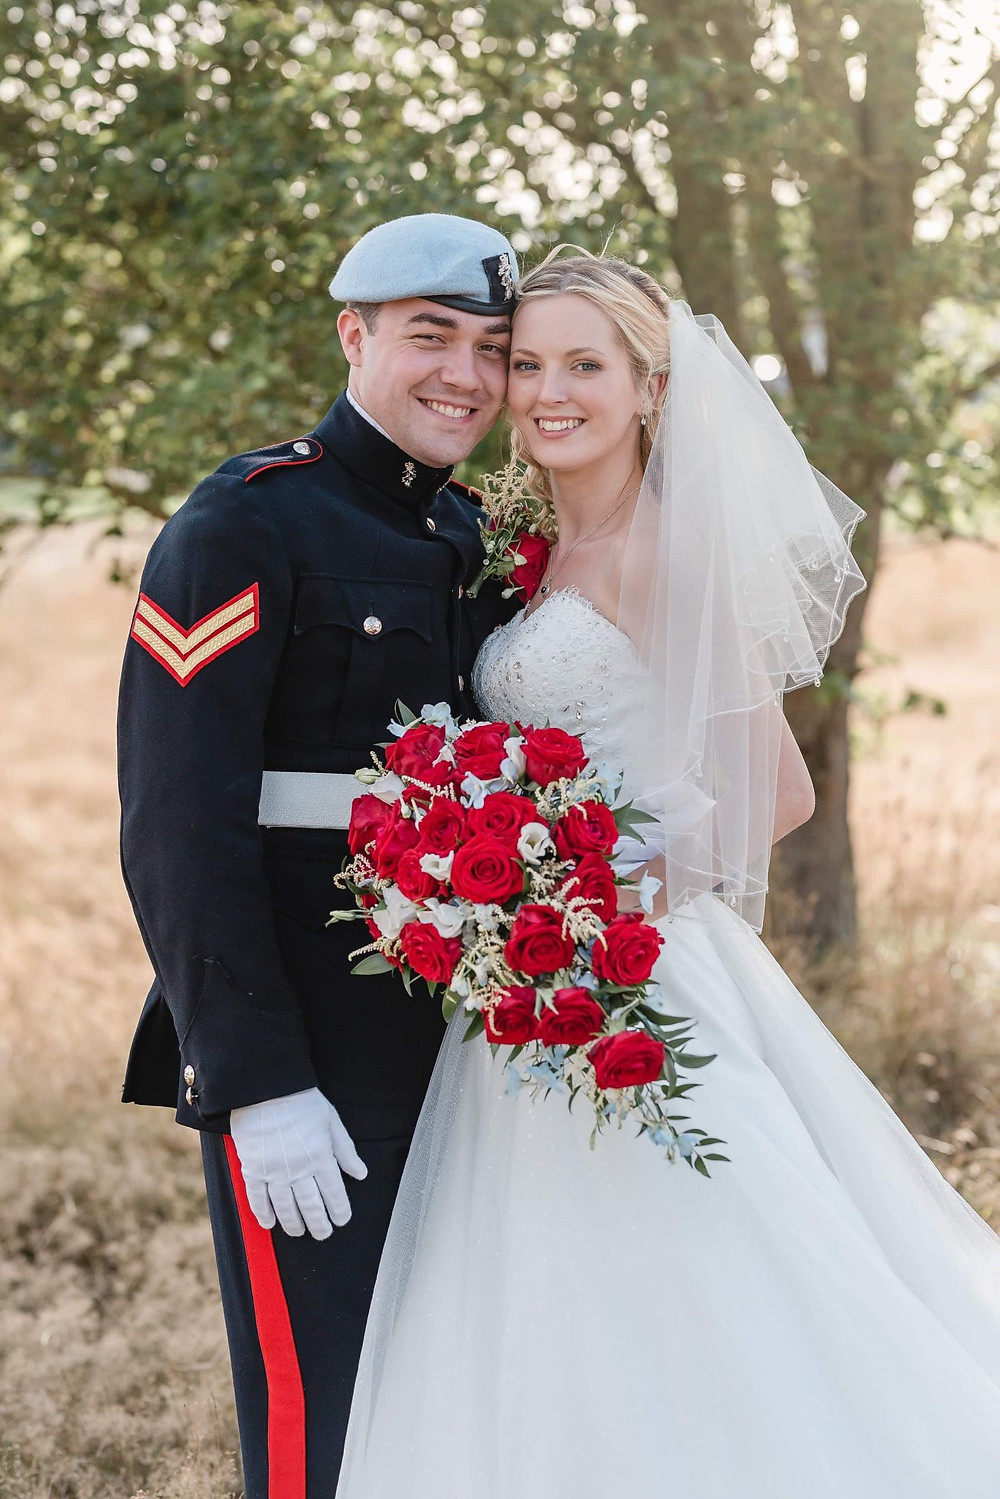 Kate Hennessy Photography | Bride and groom standing in front of a tree, holding bouquet of red roses